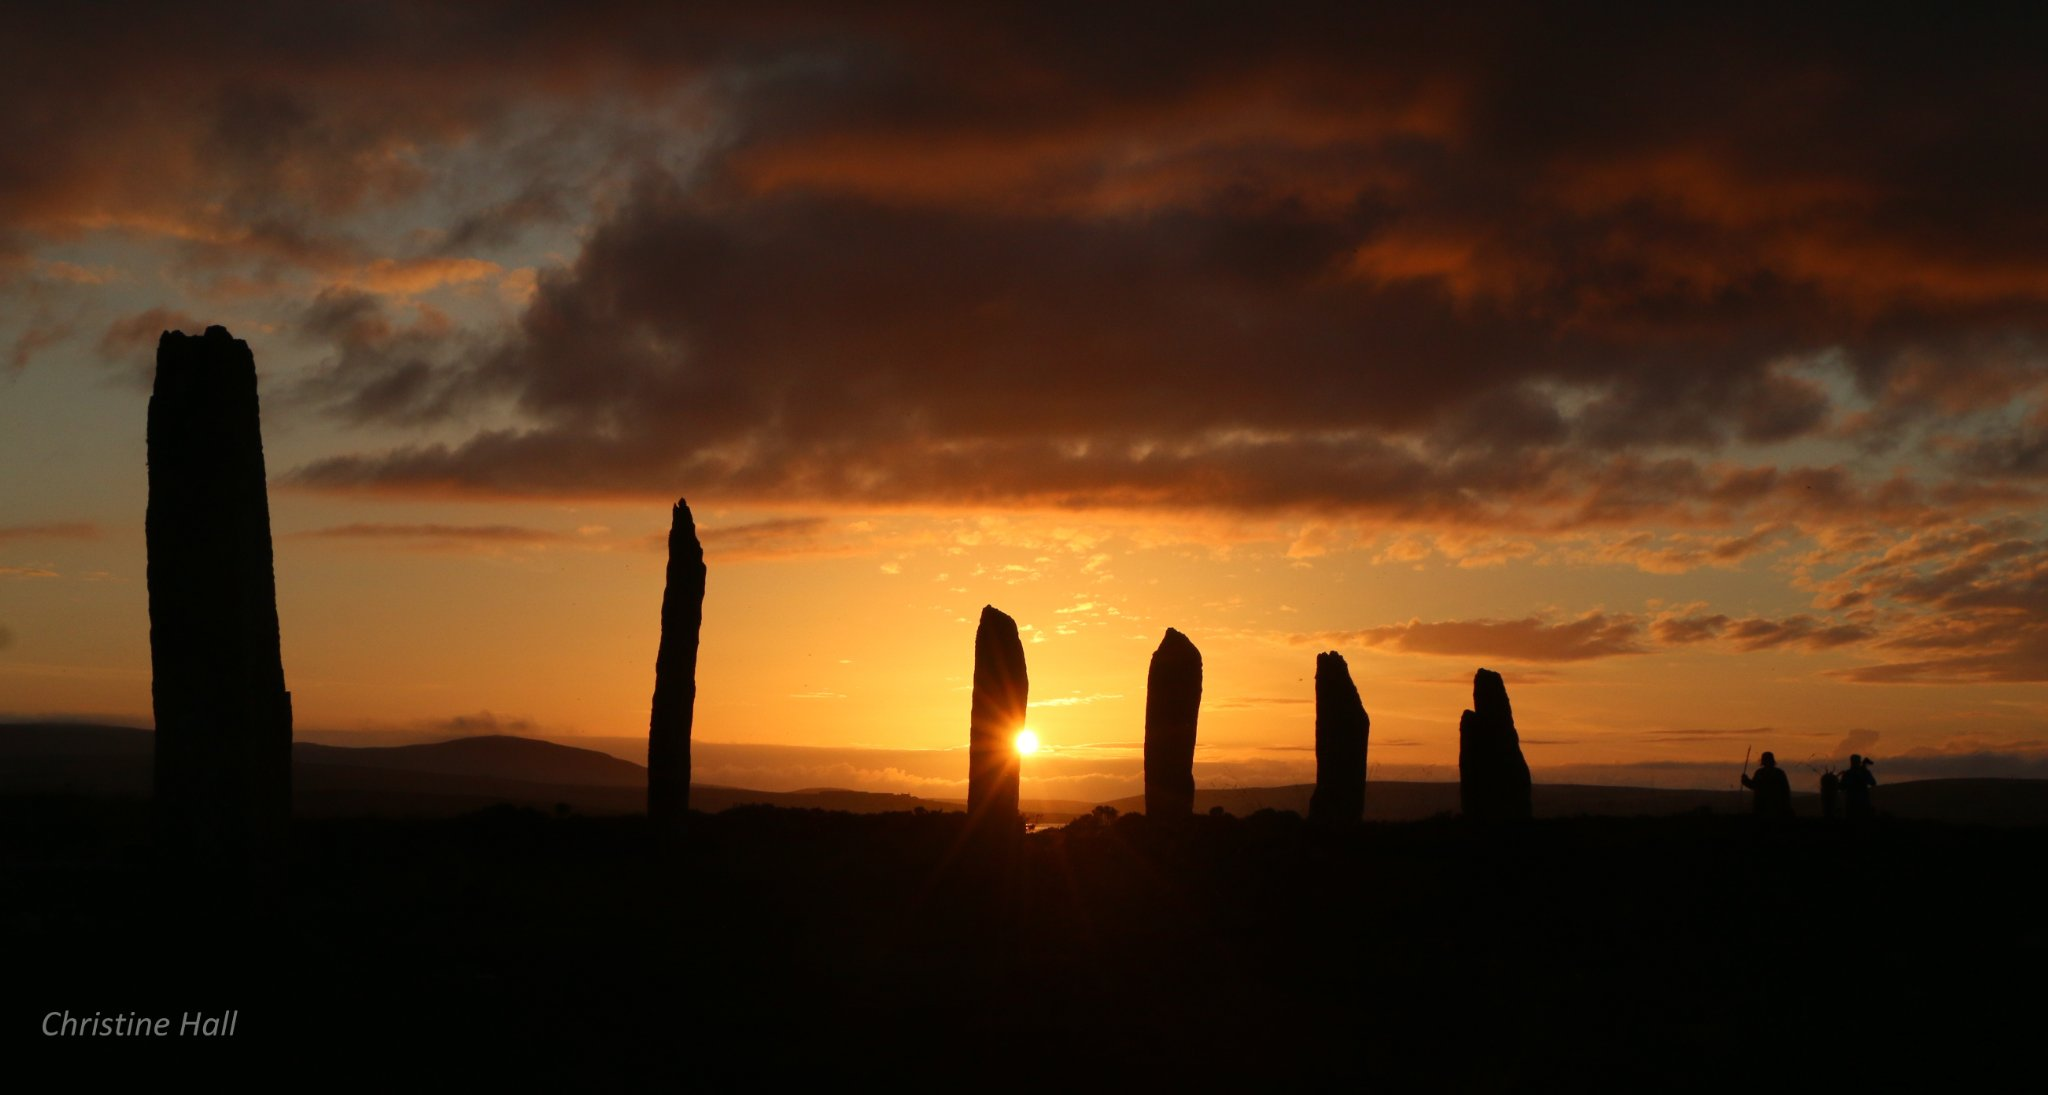 Sunset at the Ring of Brodgar - image by Christine Hall